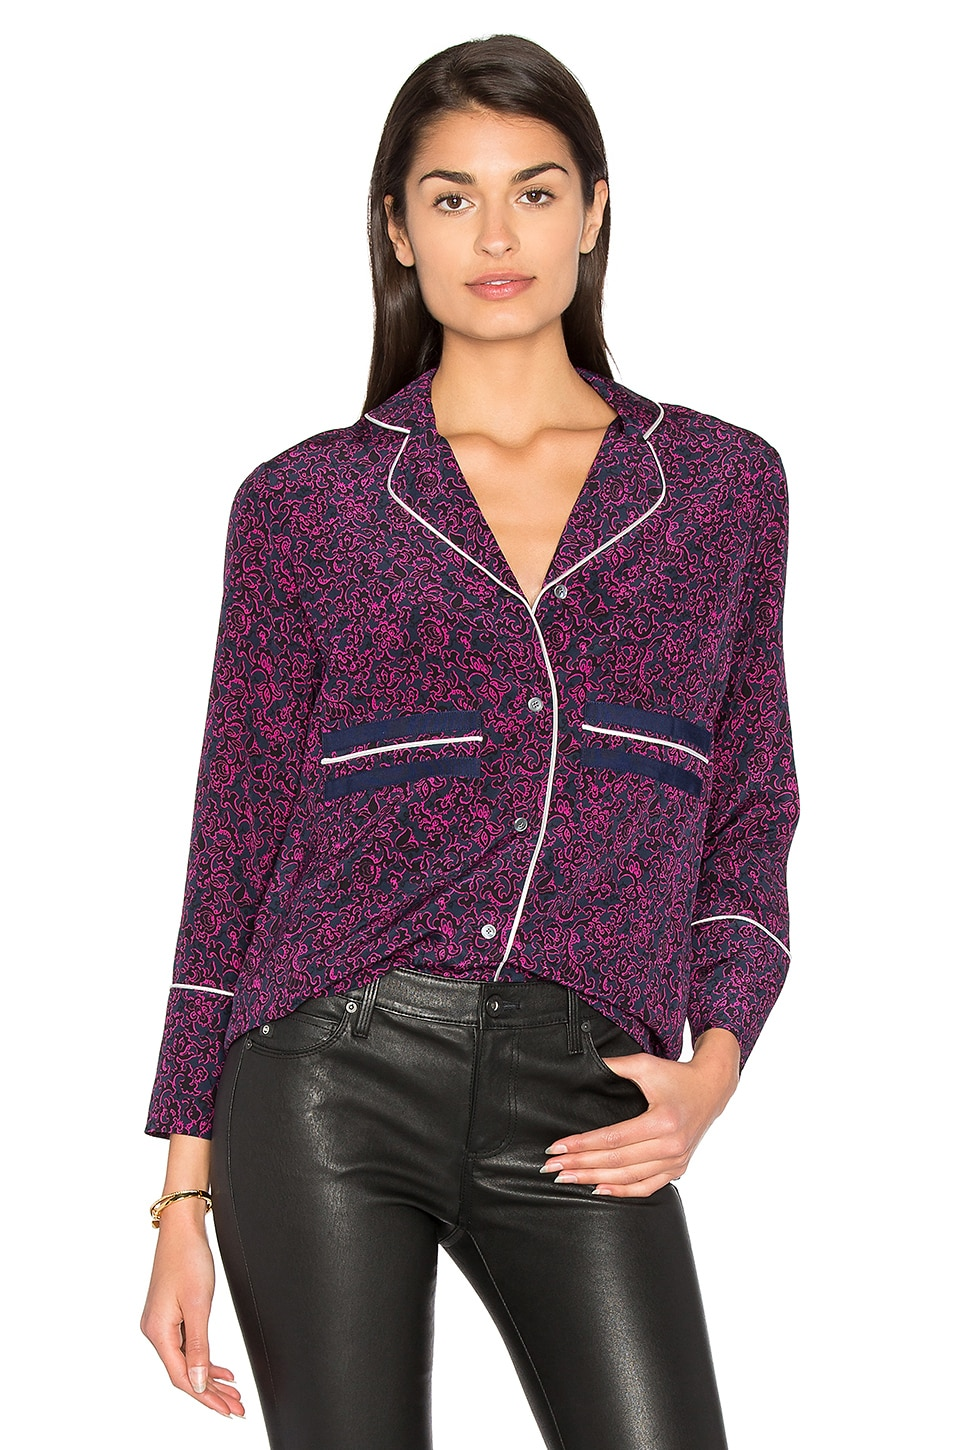 DEREK LAM 10 CROSBY Pajama Blouse in Midnight Multi